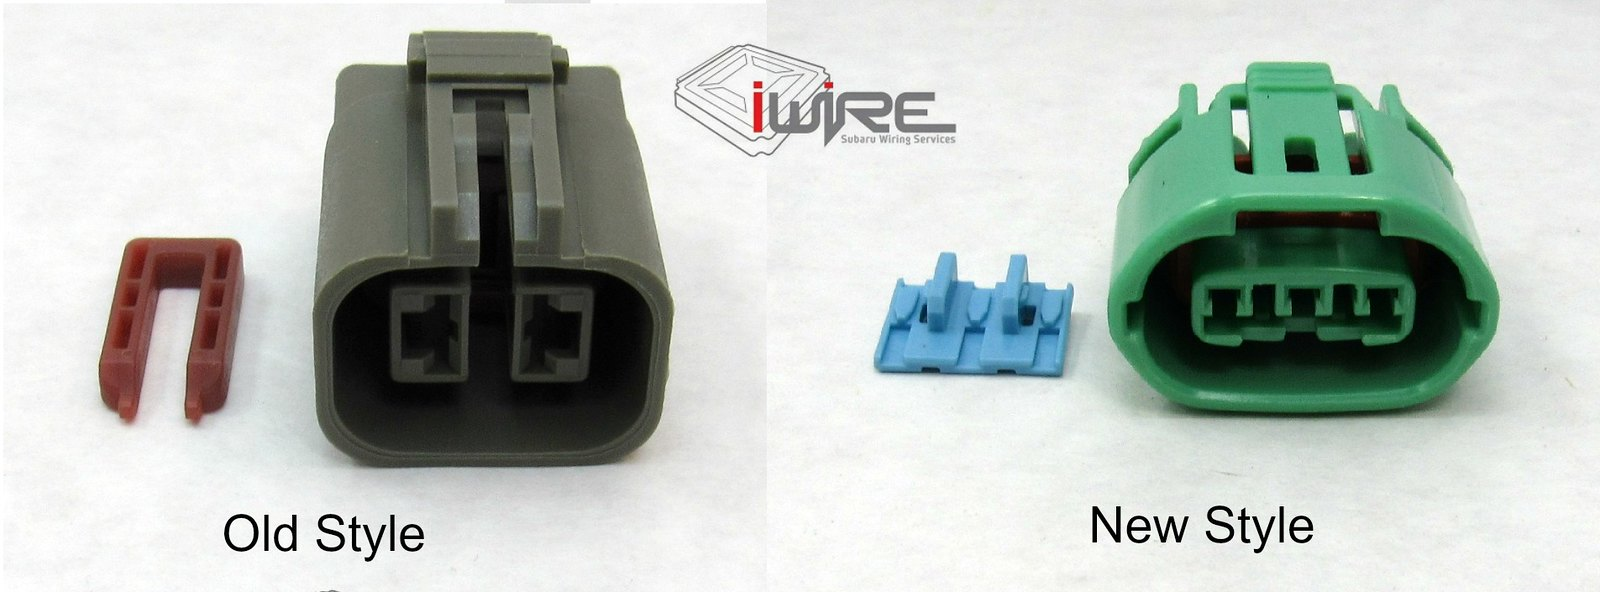 we now have both types of subaru alternator plugs - the 2 pin gray square  plug for 1998 and earlier subaru and the 3 pin green oval plug for 1999 and  later